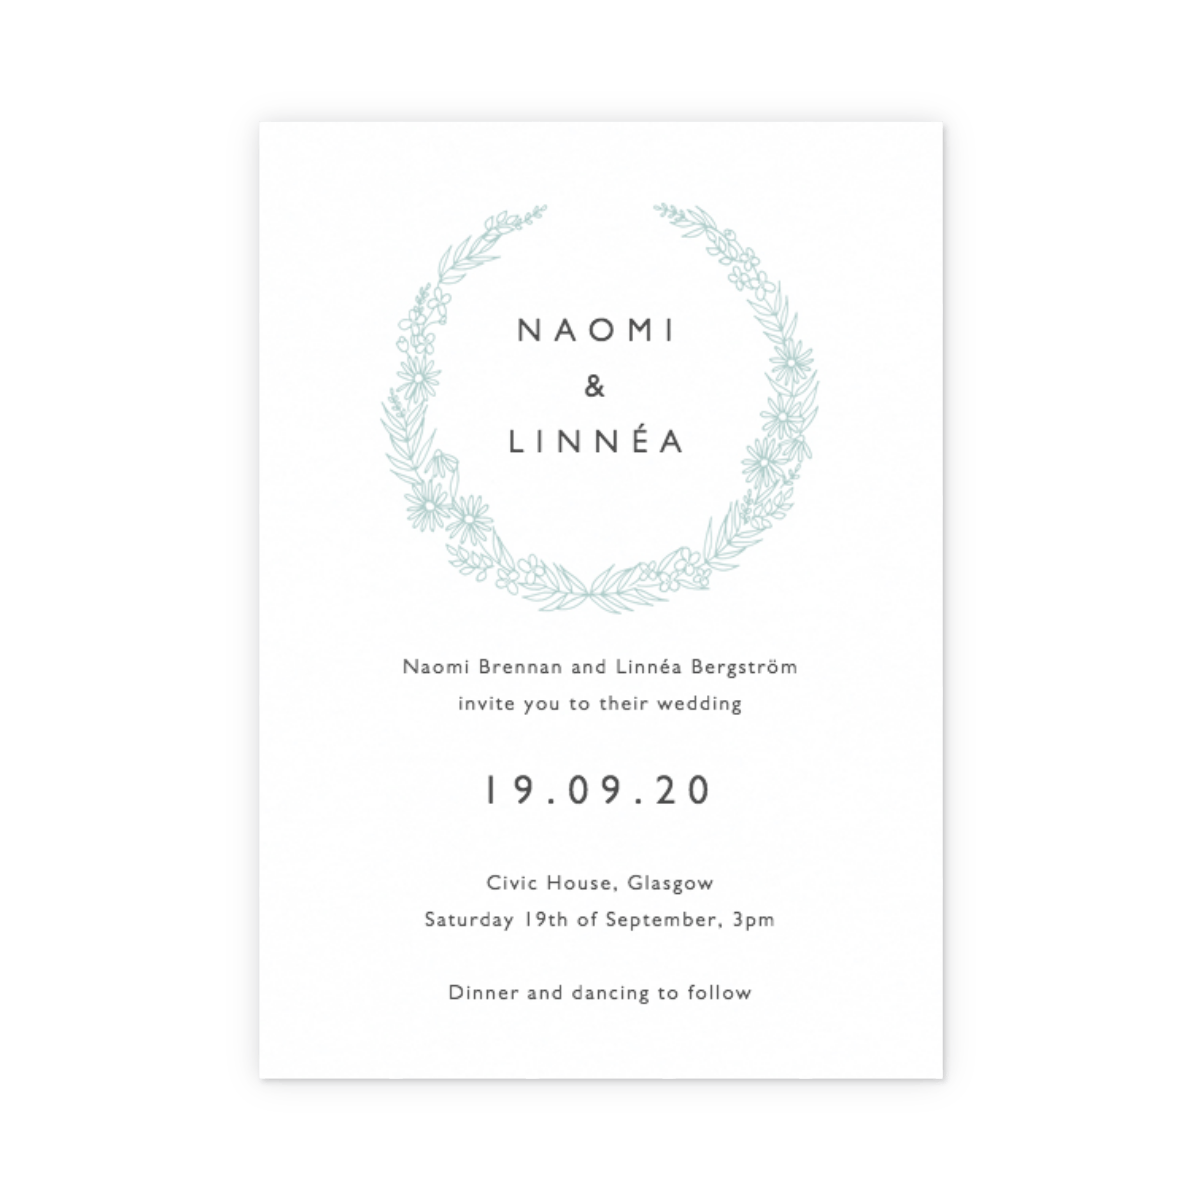 Wedding Invitation Wording - Ideas & Inspiration